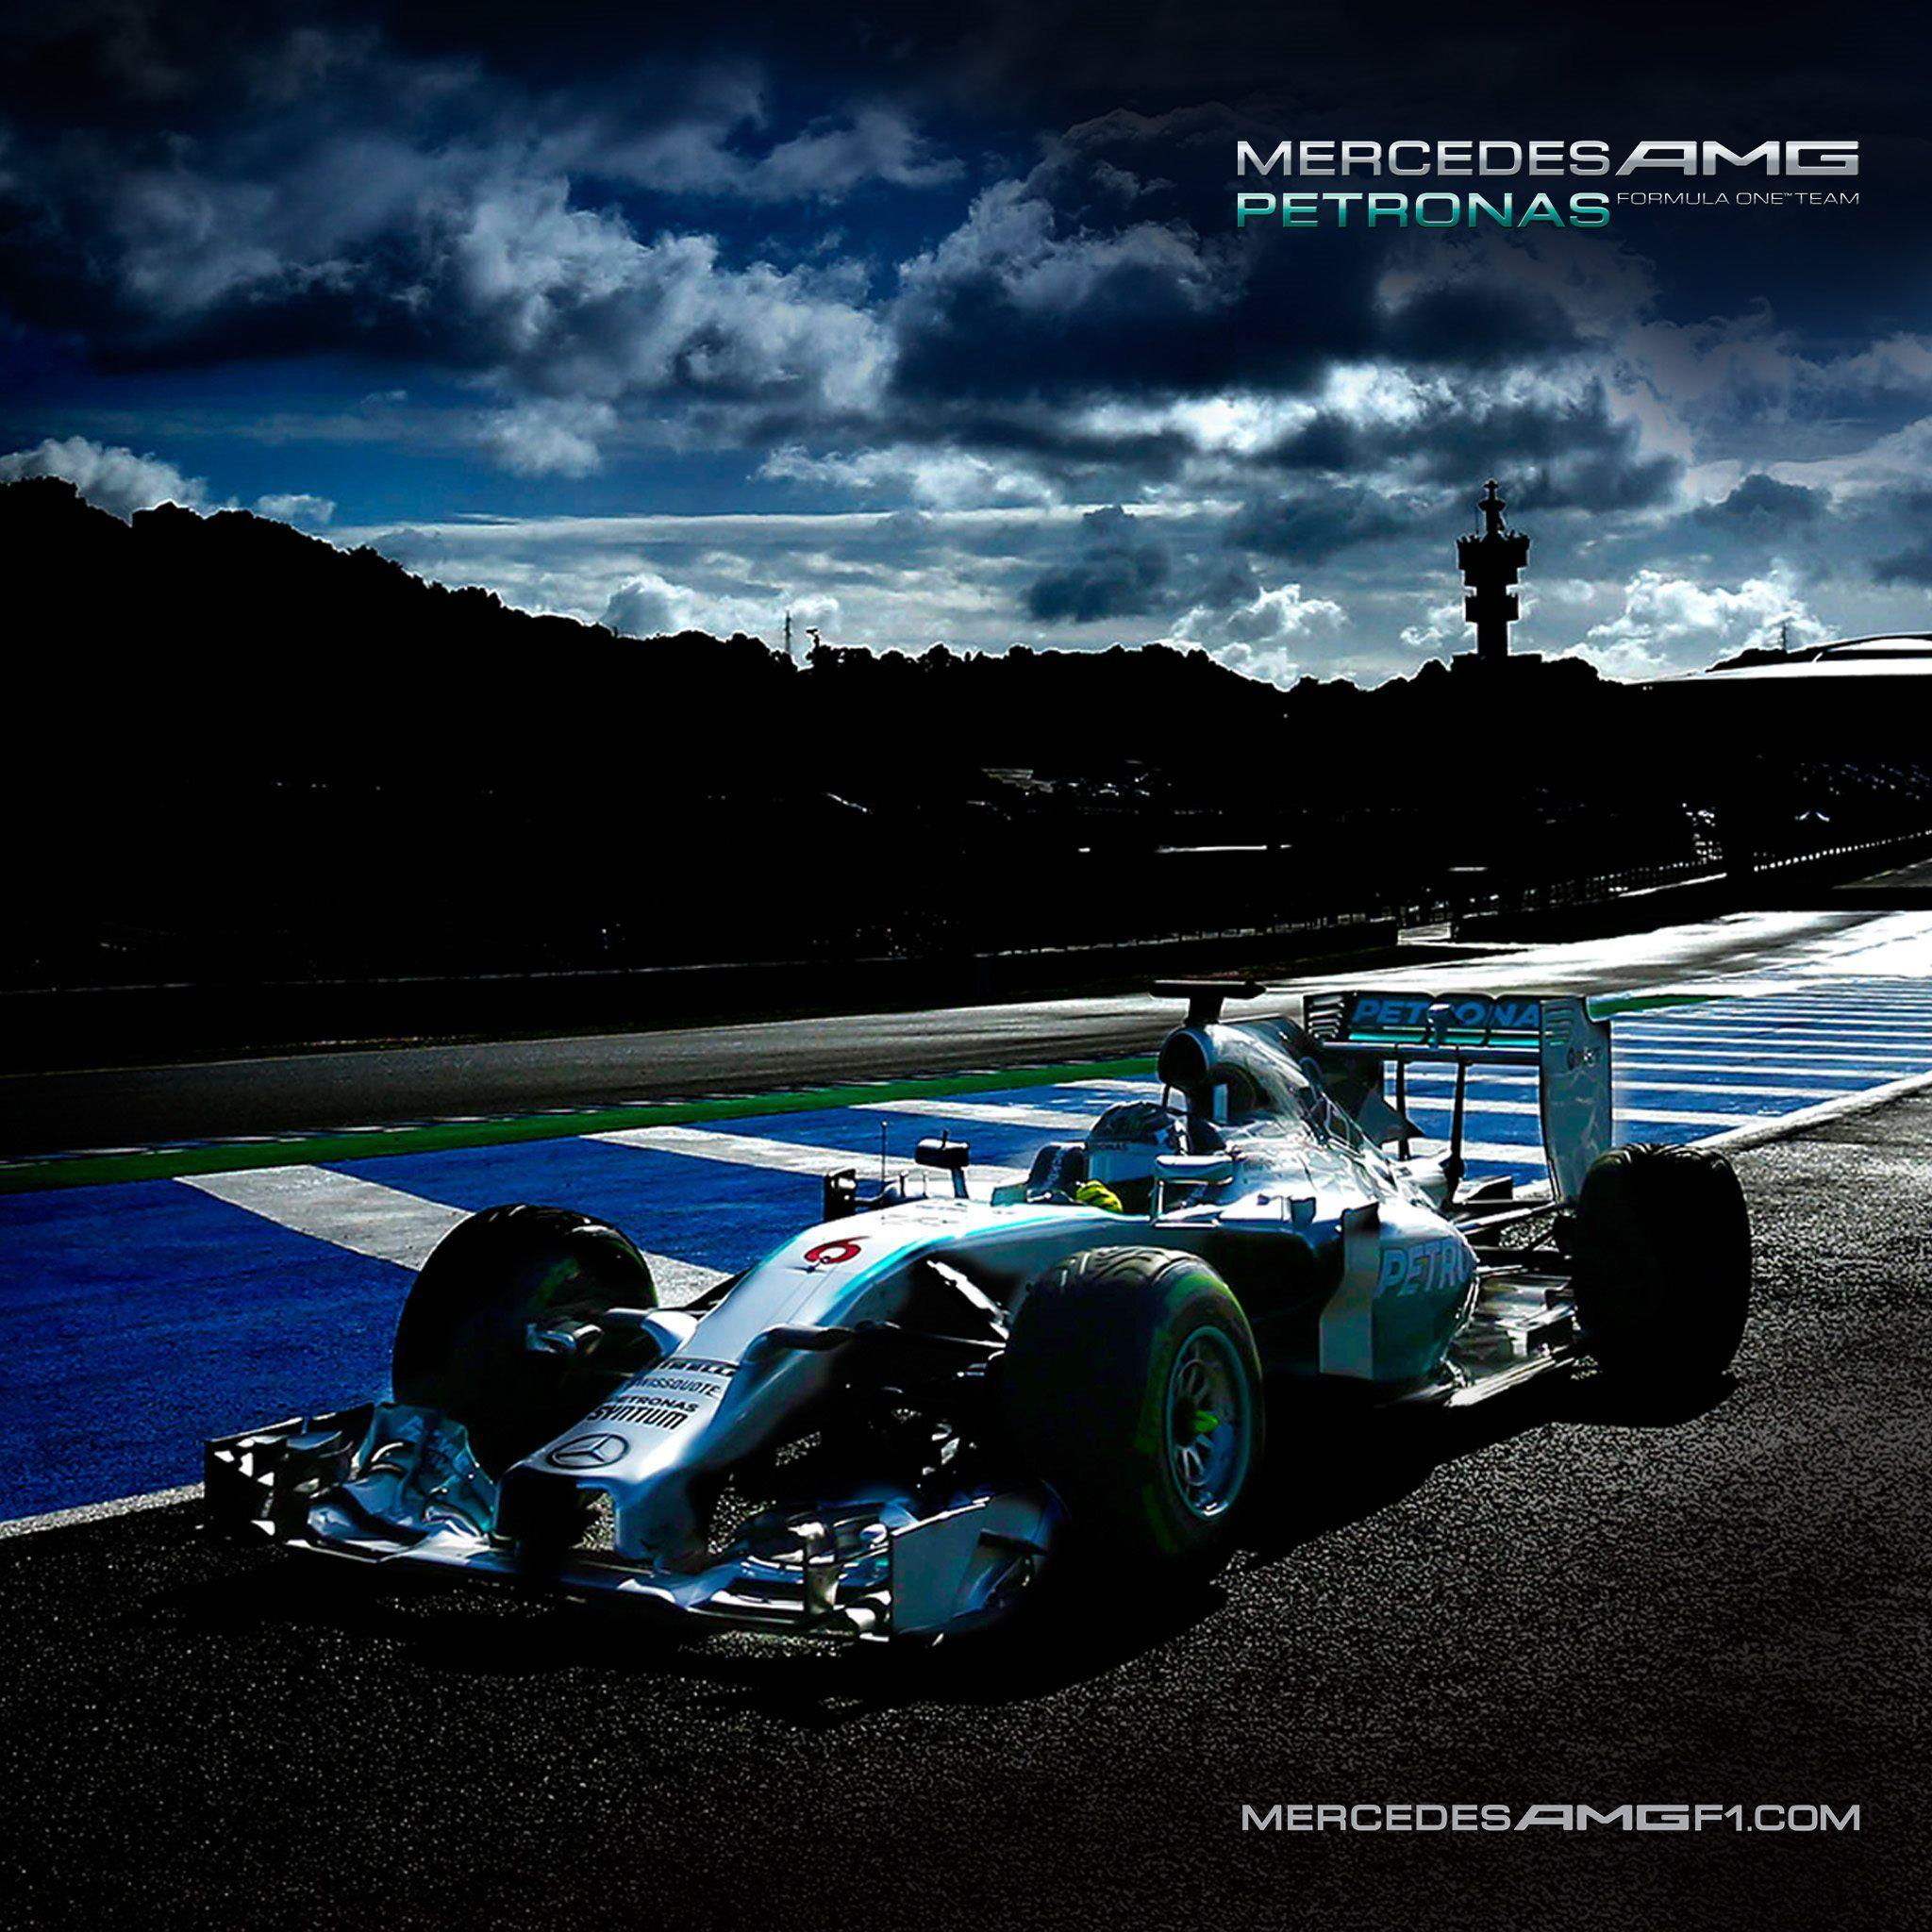 Mercedes AMG Petronas F1 HD Wallpapers. 4K Wallpapers